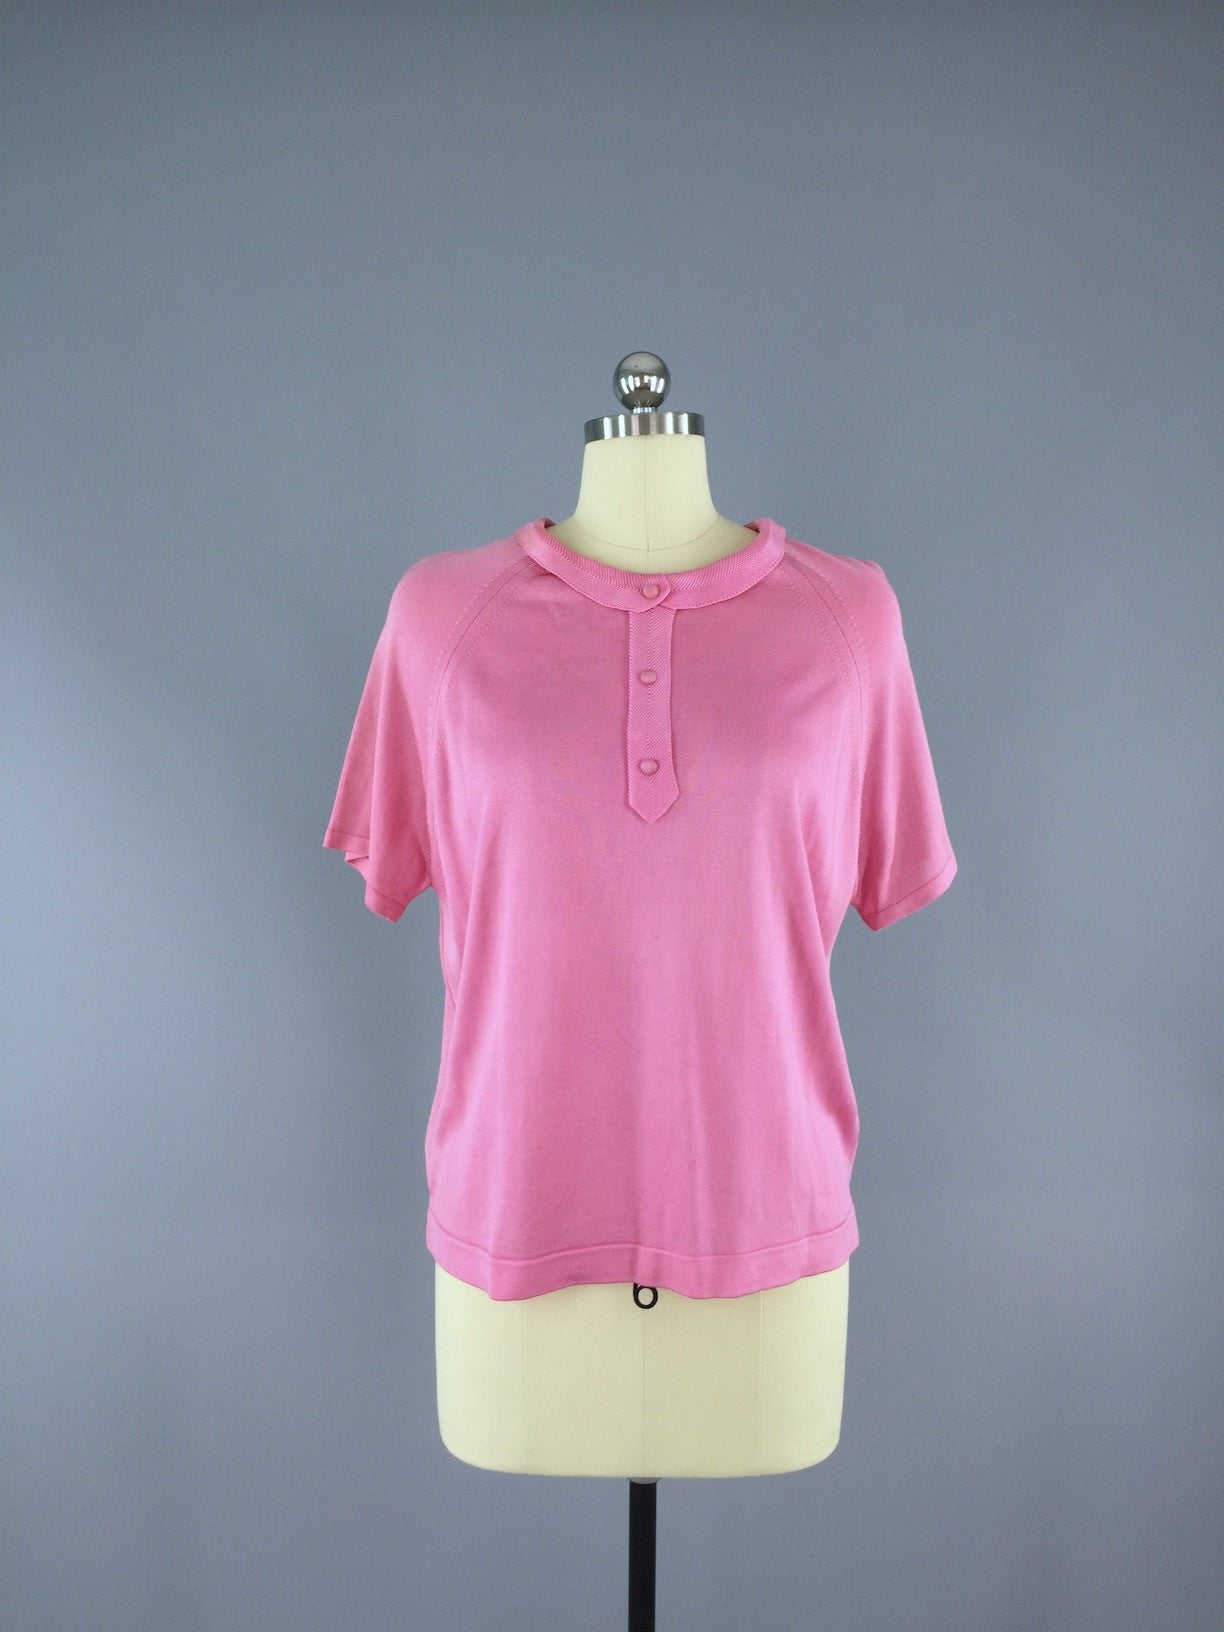 Vintage 1960s Carnation Pink Sweater Top Tops ThisBlueBird - Sale